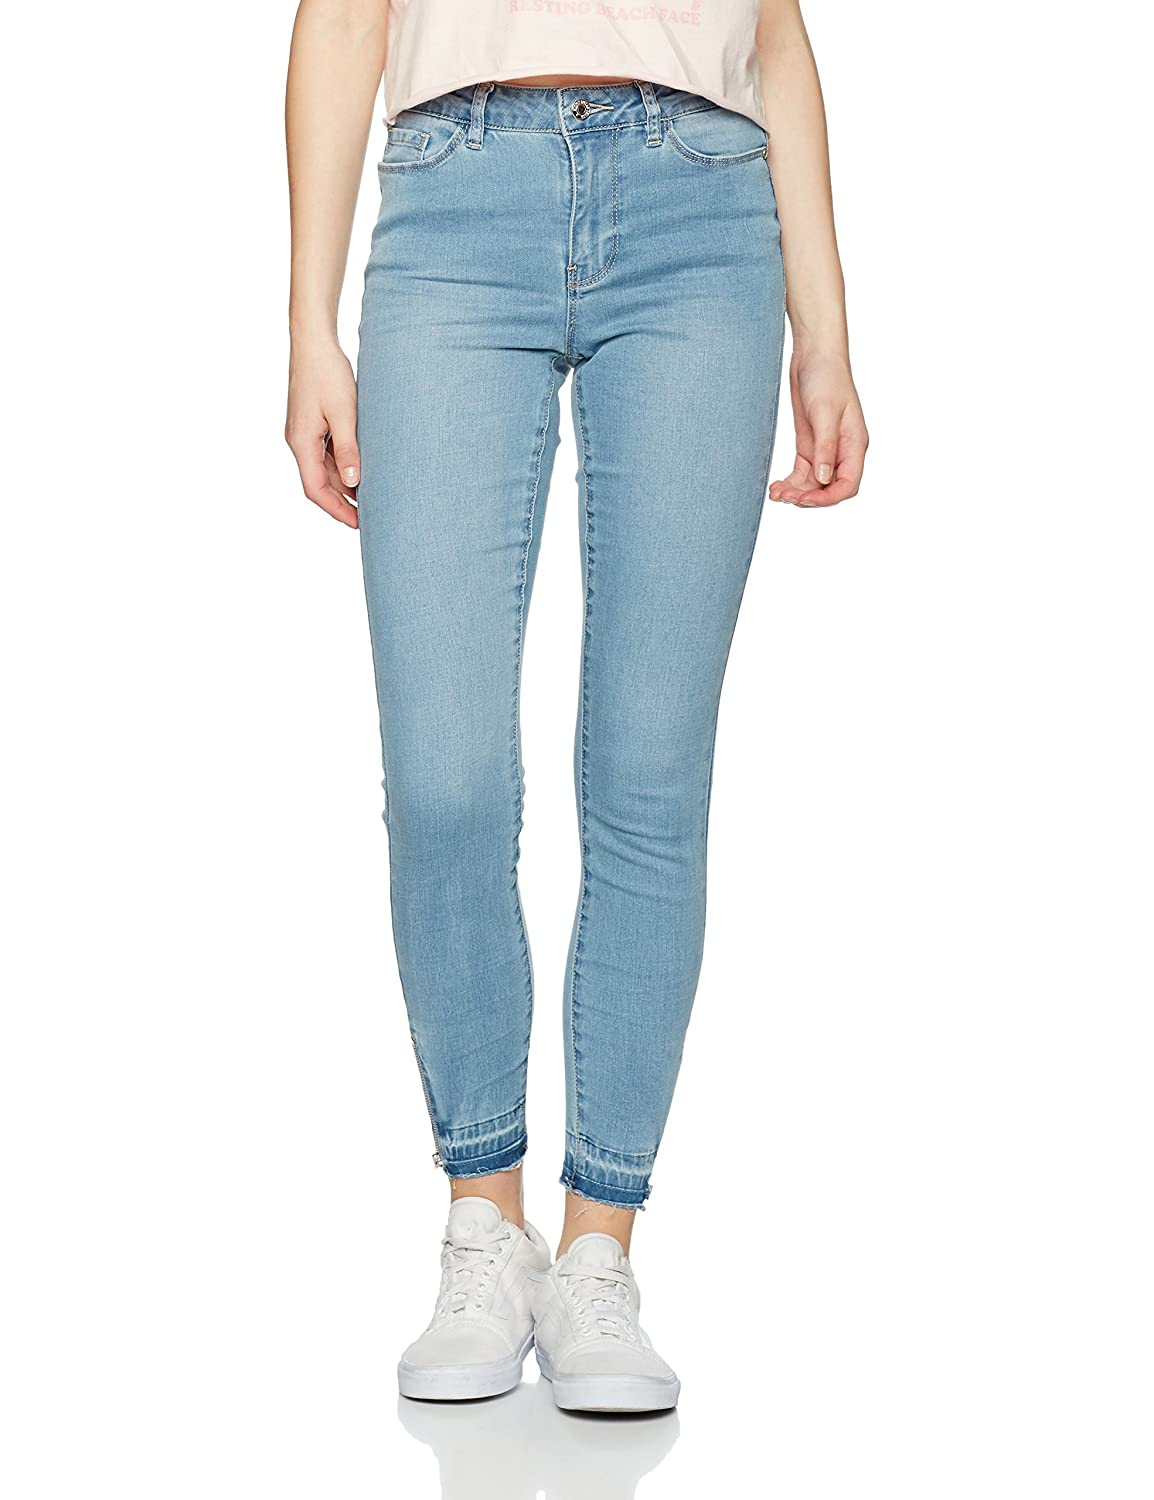 TALLA 29W / 32L. G-STAR RAW Vmseven NW Slim Ankle Tanja Jeans Mix, Camisa para Mujer